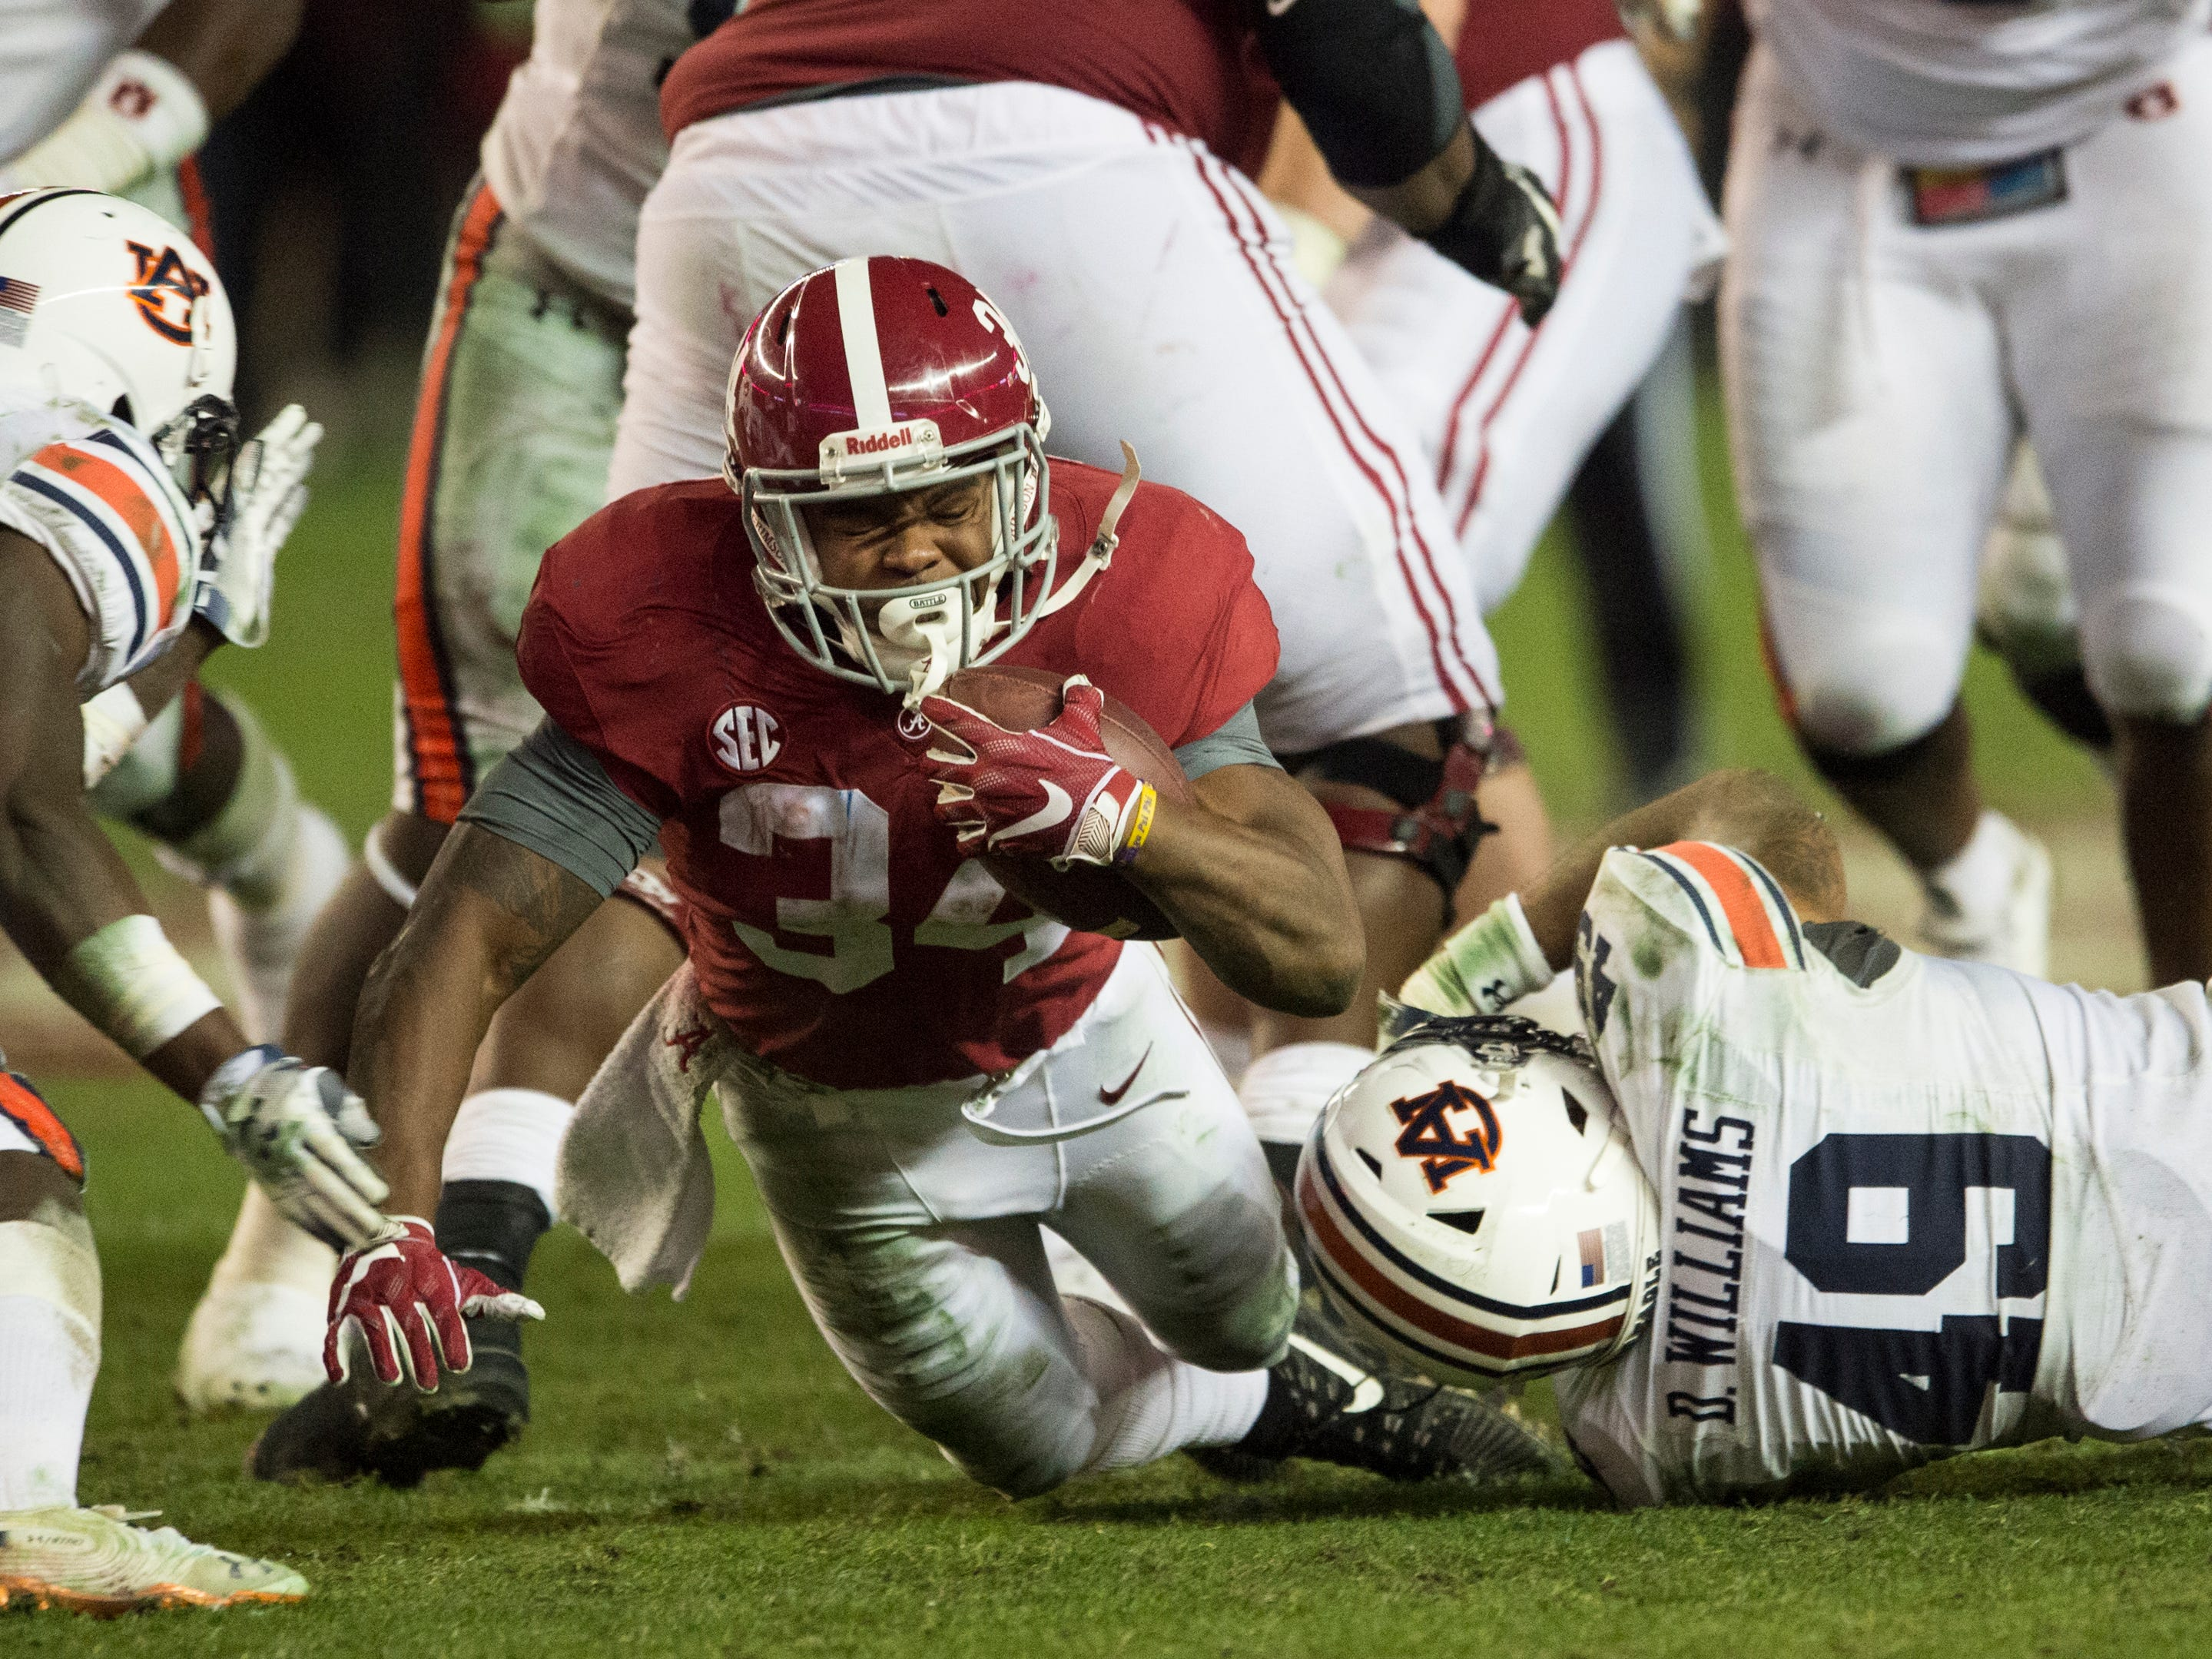 Alabama running back Damien Harris (34) is taken down by Auburn linebacker Darrell Williams (49) during the Iron Bowl at Bryant-Denny Stadium in Tuscaloosa, Ala., on Saturday, Nov. 24, 2018. Alabama defeated Auburn 52-21.